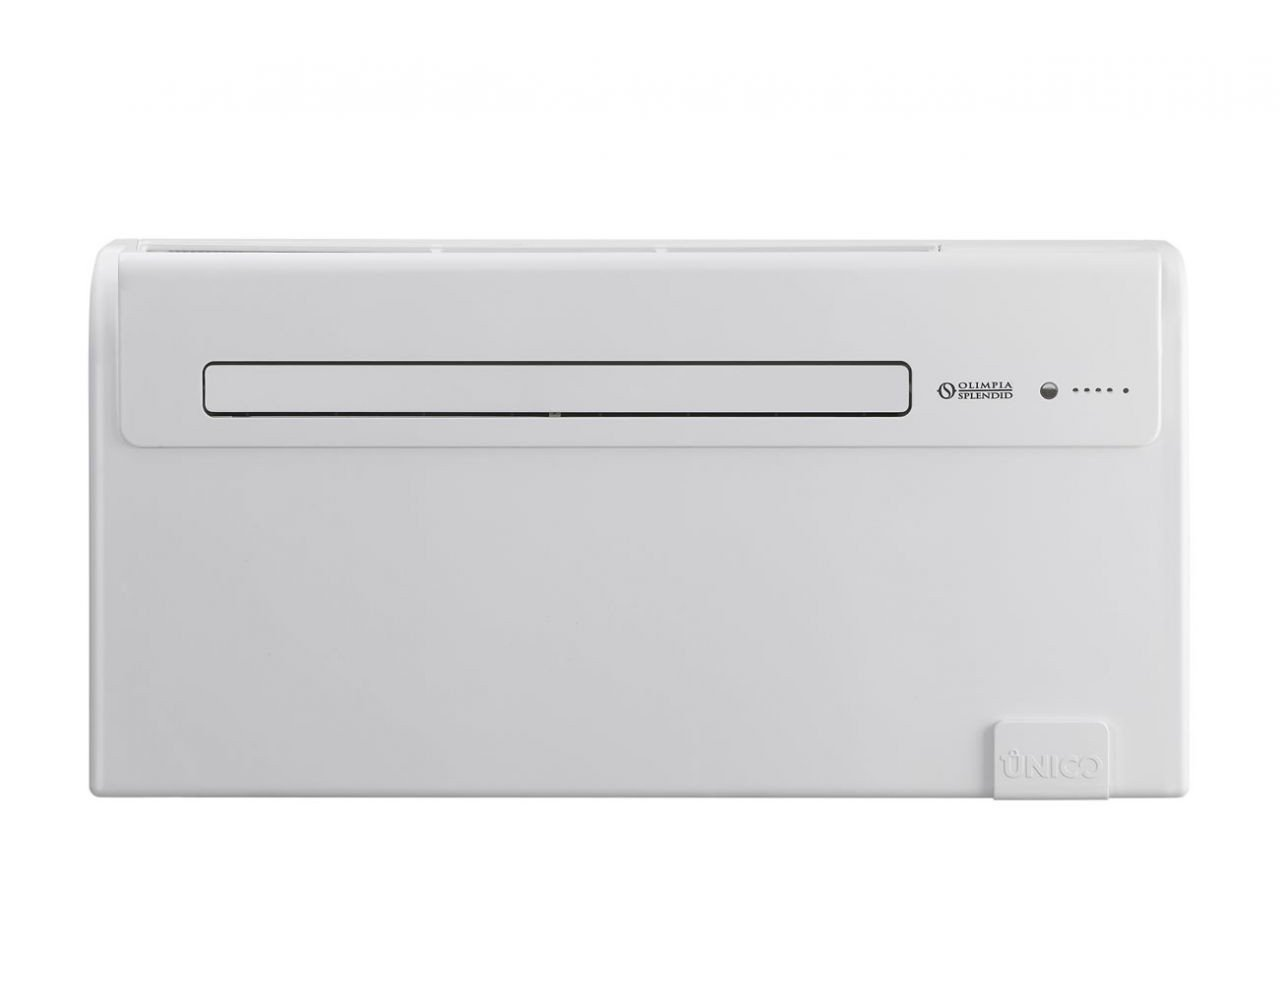 OLIMPIA Splendid Unico Air 8SF PowerCoil Taraud 1800 W Blanc Wall Air Conditioner fenêtre et climatisation mural Pass-Through (230 V, 50 Hz, 700 W, Blanc, 978 mm, 164 mm)